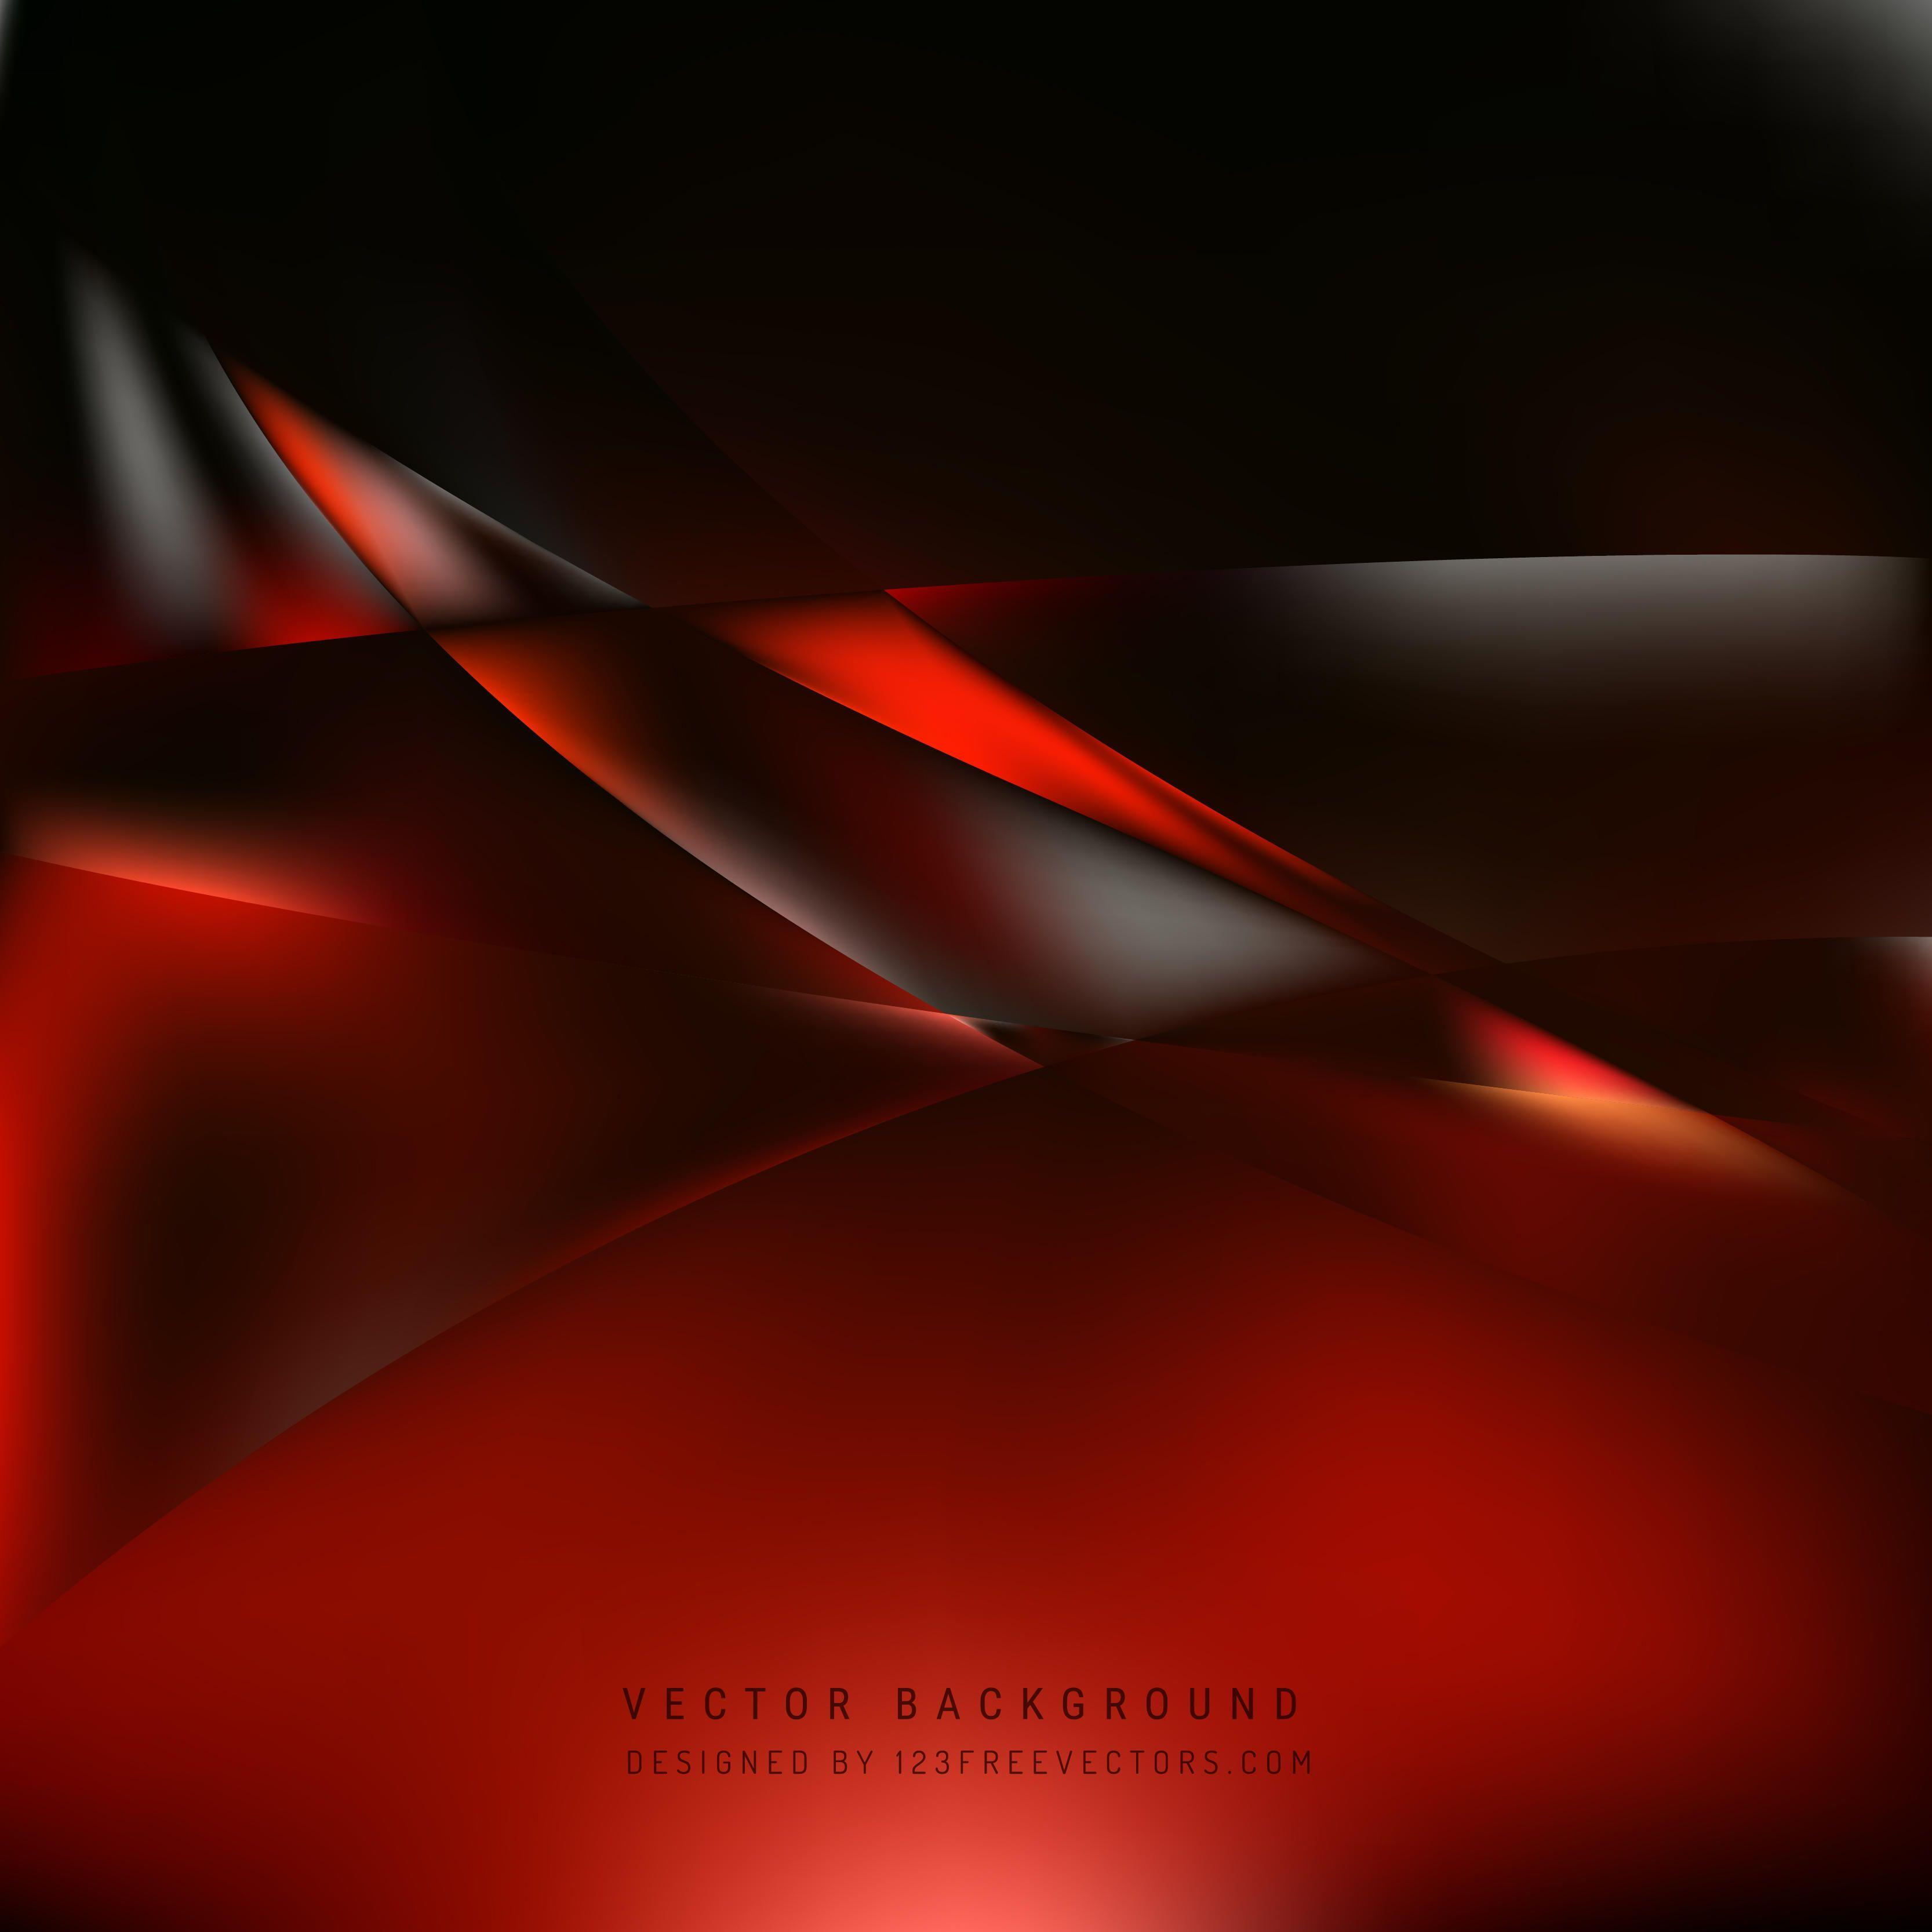 190+ Red and Black Background Vectors | Download Free Vector Art ...